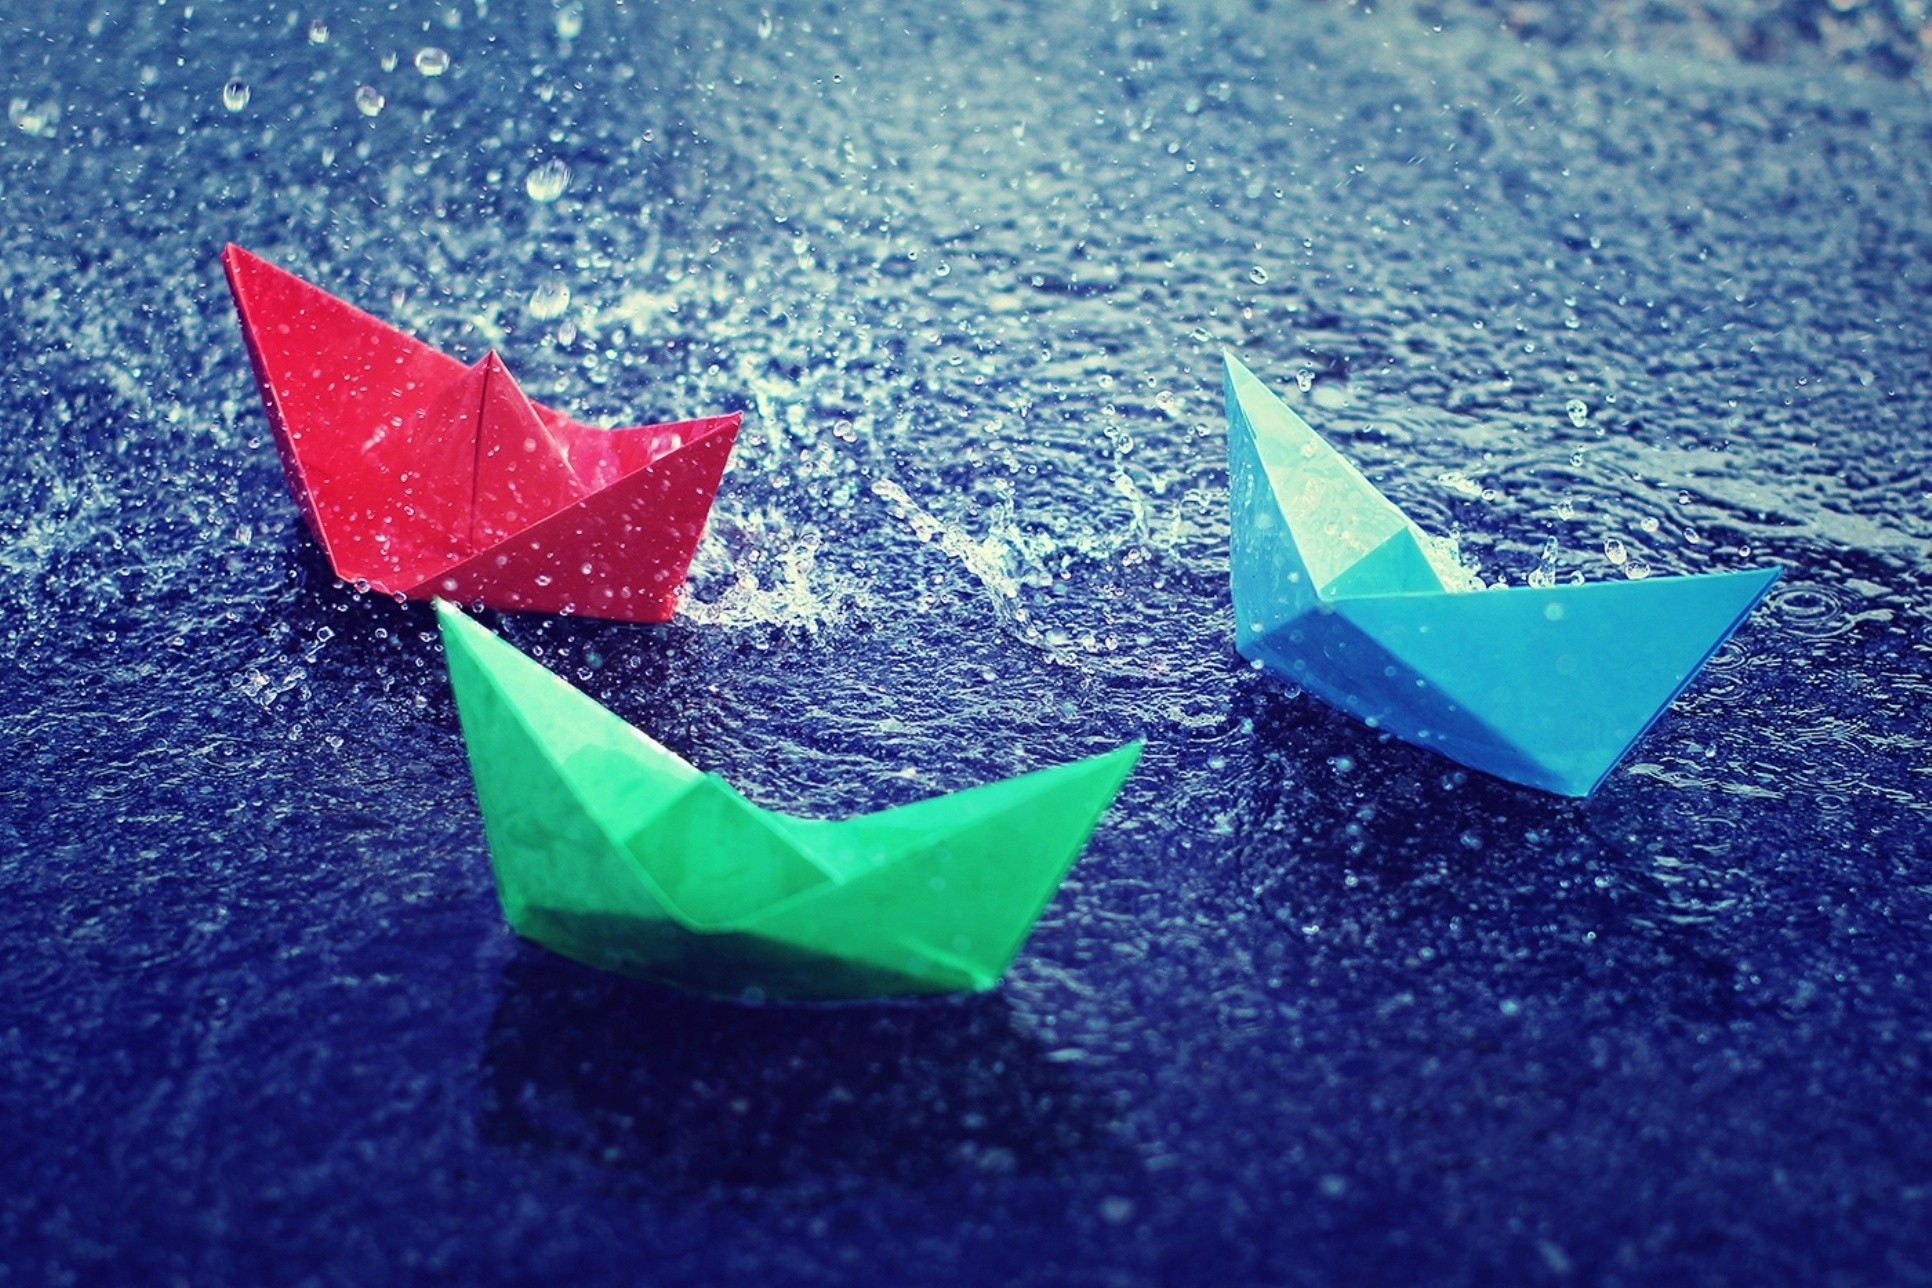 Raining Wallpapers Free Raining Wallpapers Backgrounds on